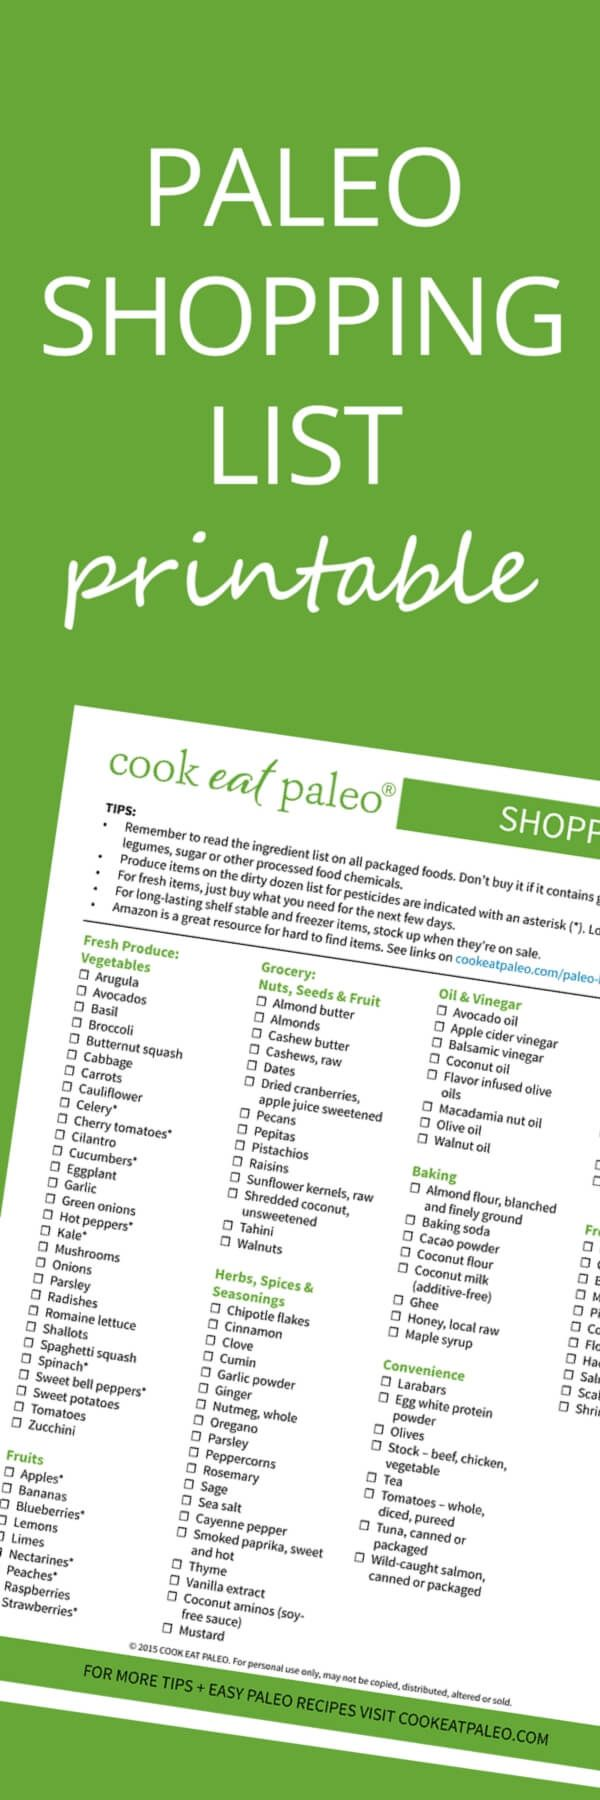 Free Printable Paleo Shopping List with everything you need to stock your pantry... plus tips on ingredients to avoid and what to buy organic.